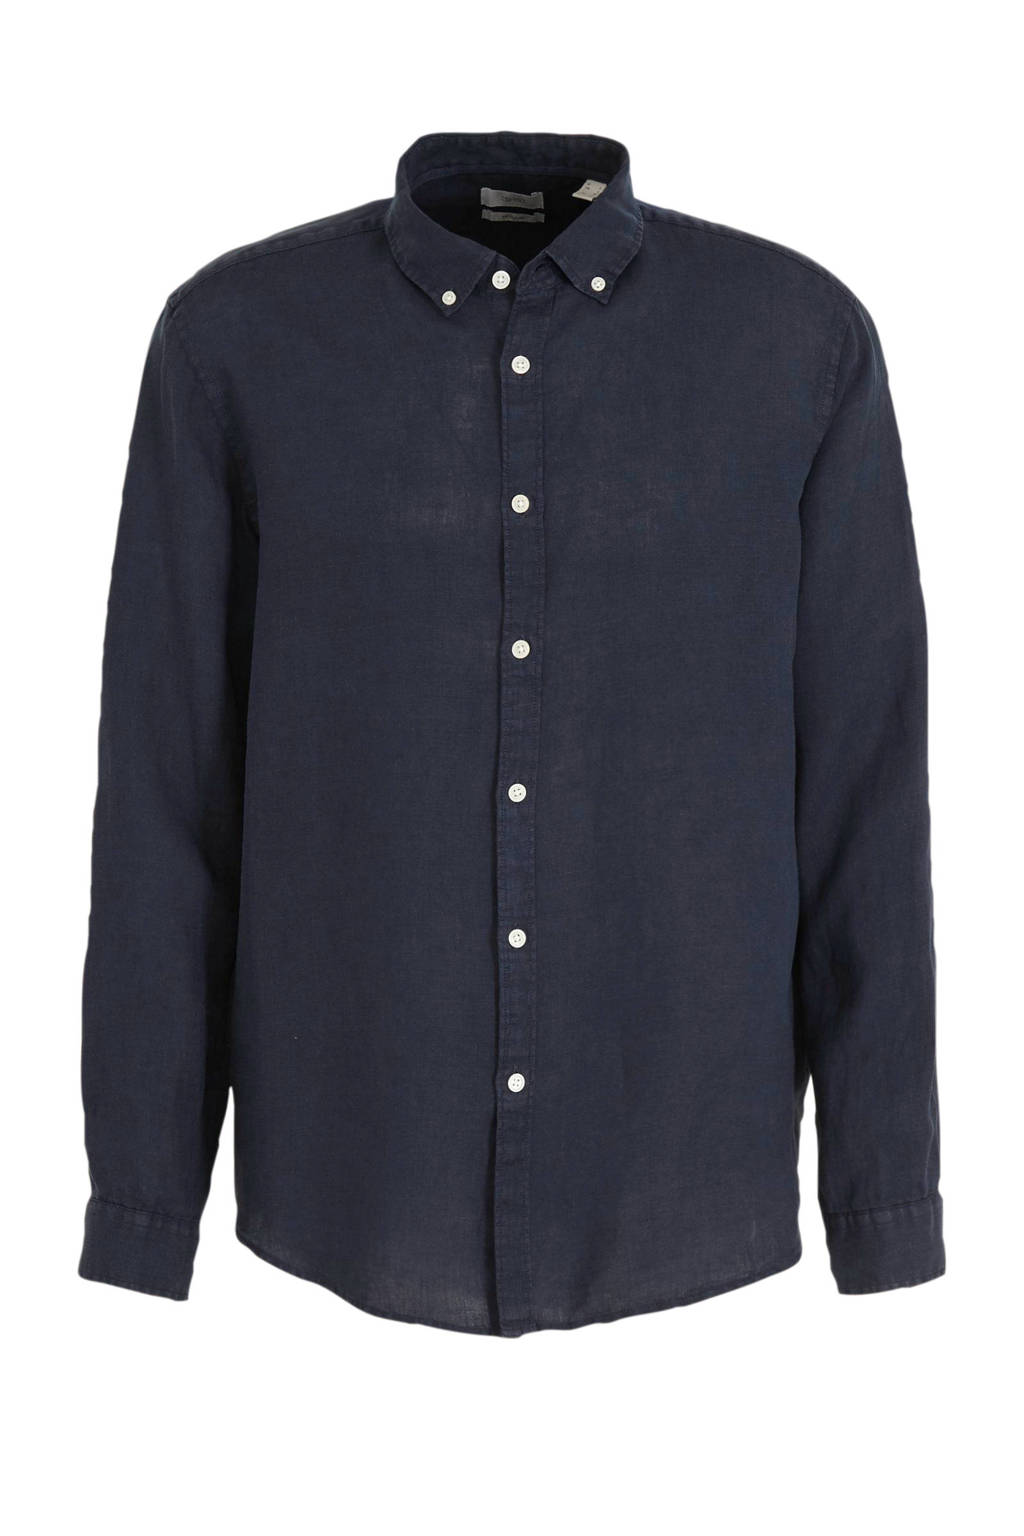 ESPRIT Men Casual slim fit overhemd, Donkerblauw